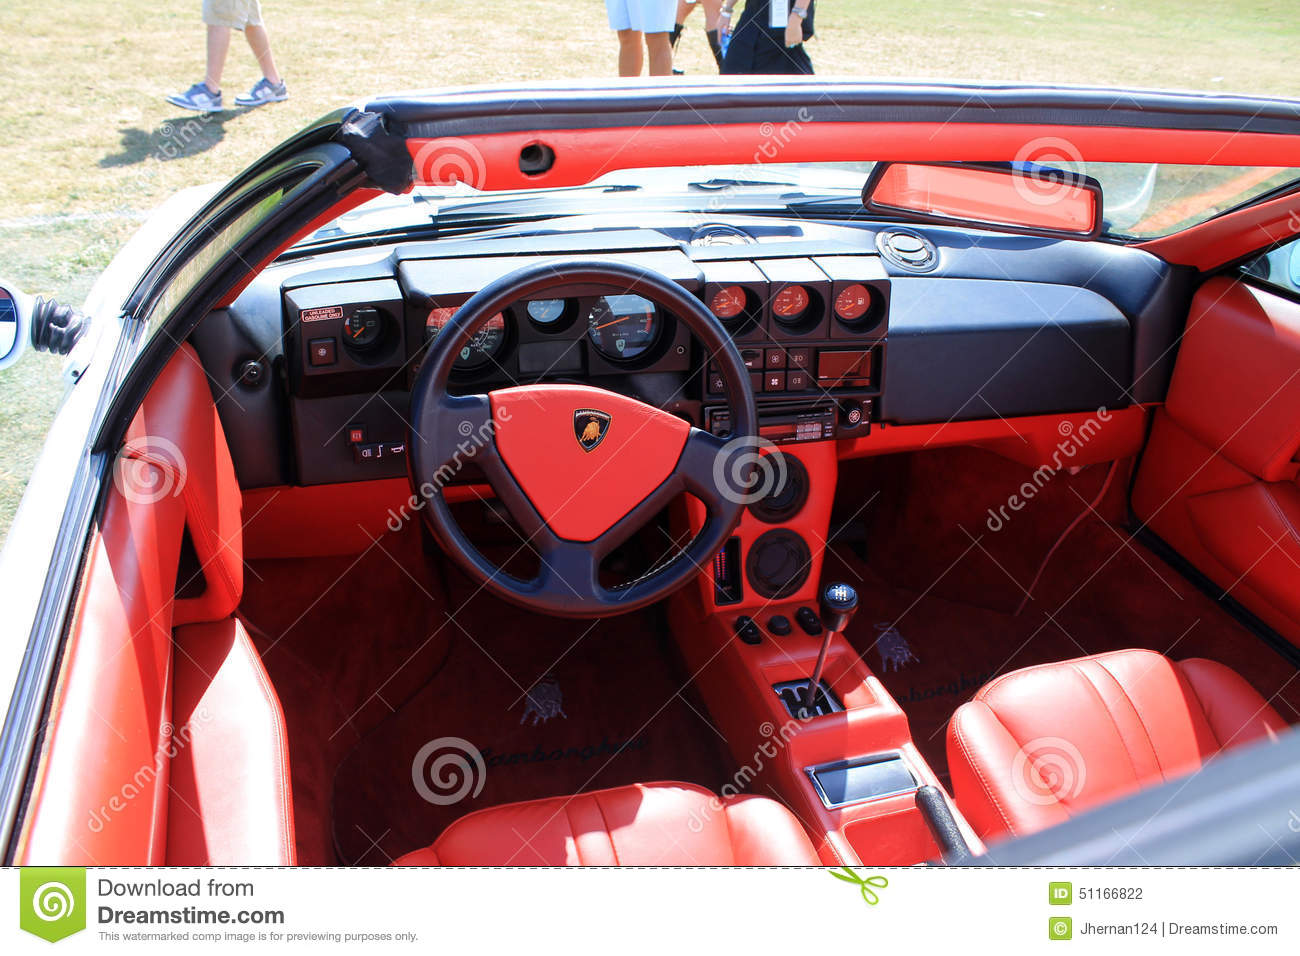 classic lamborghini cockpit interior editorial photography image 51166822. Black Bedroom Furniture Sets. Home Design Ideas